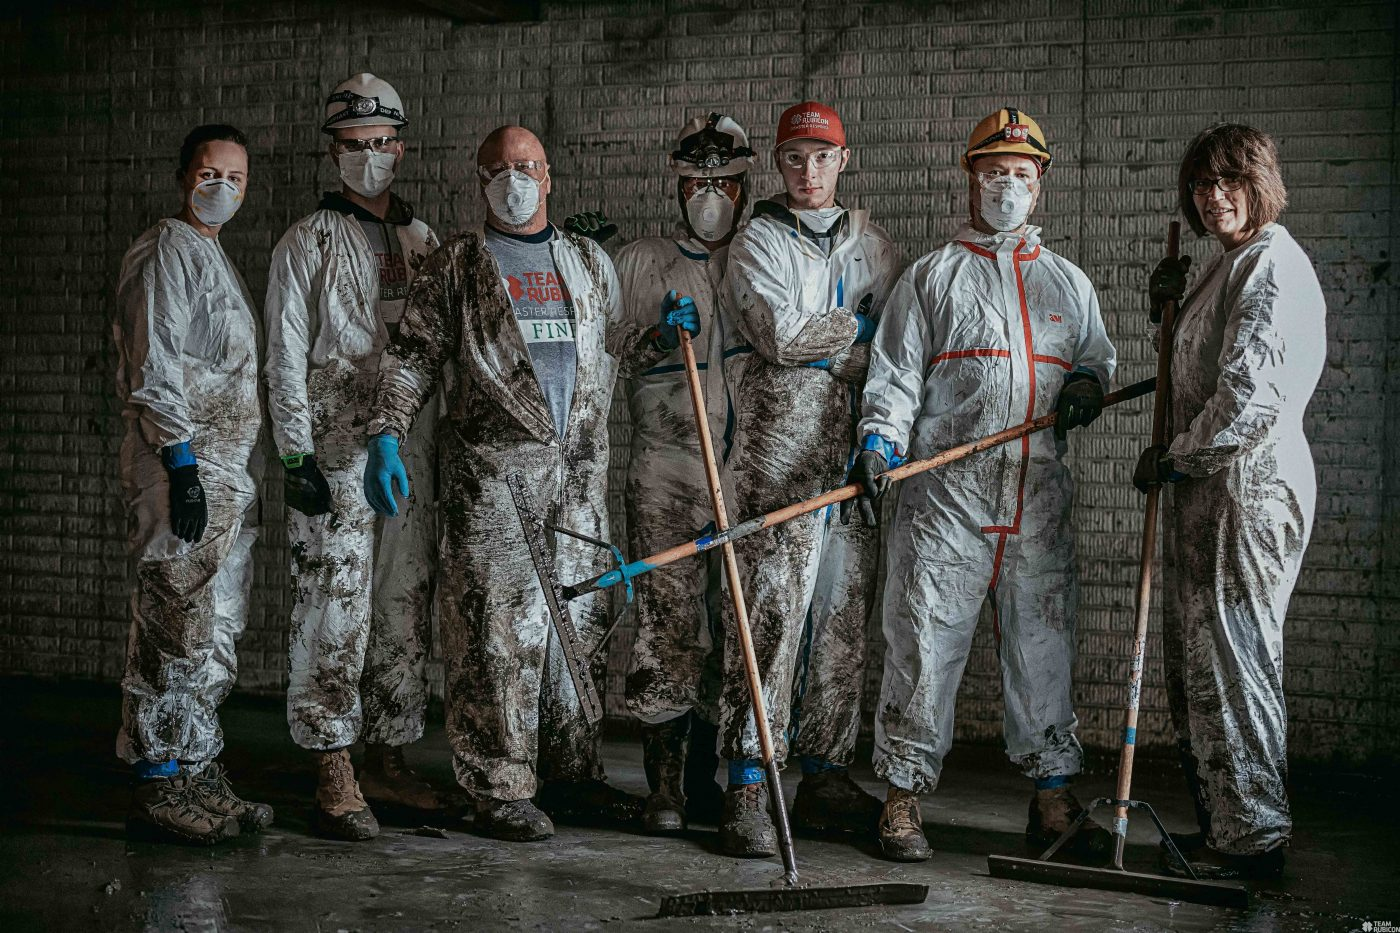 Seven people ready to do dirty work,